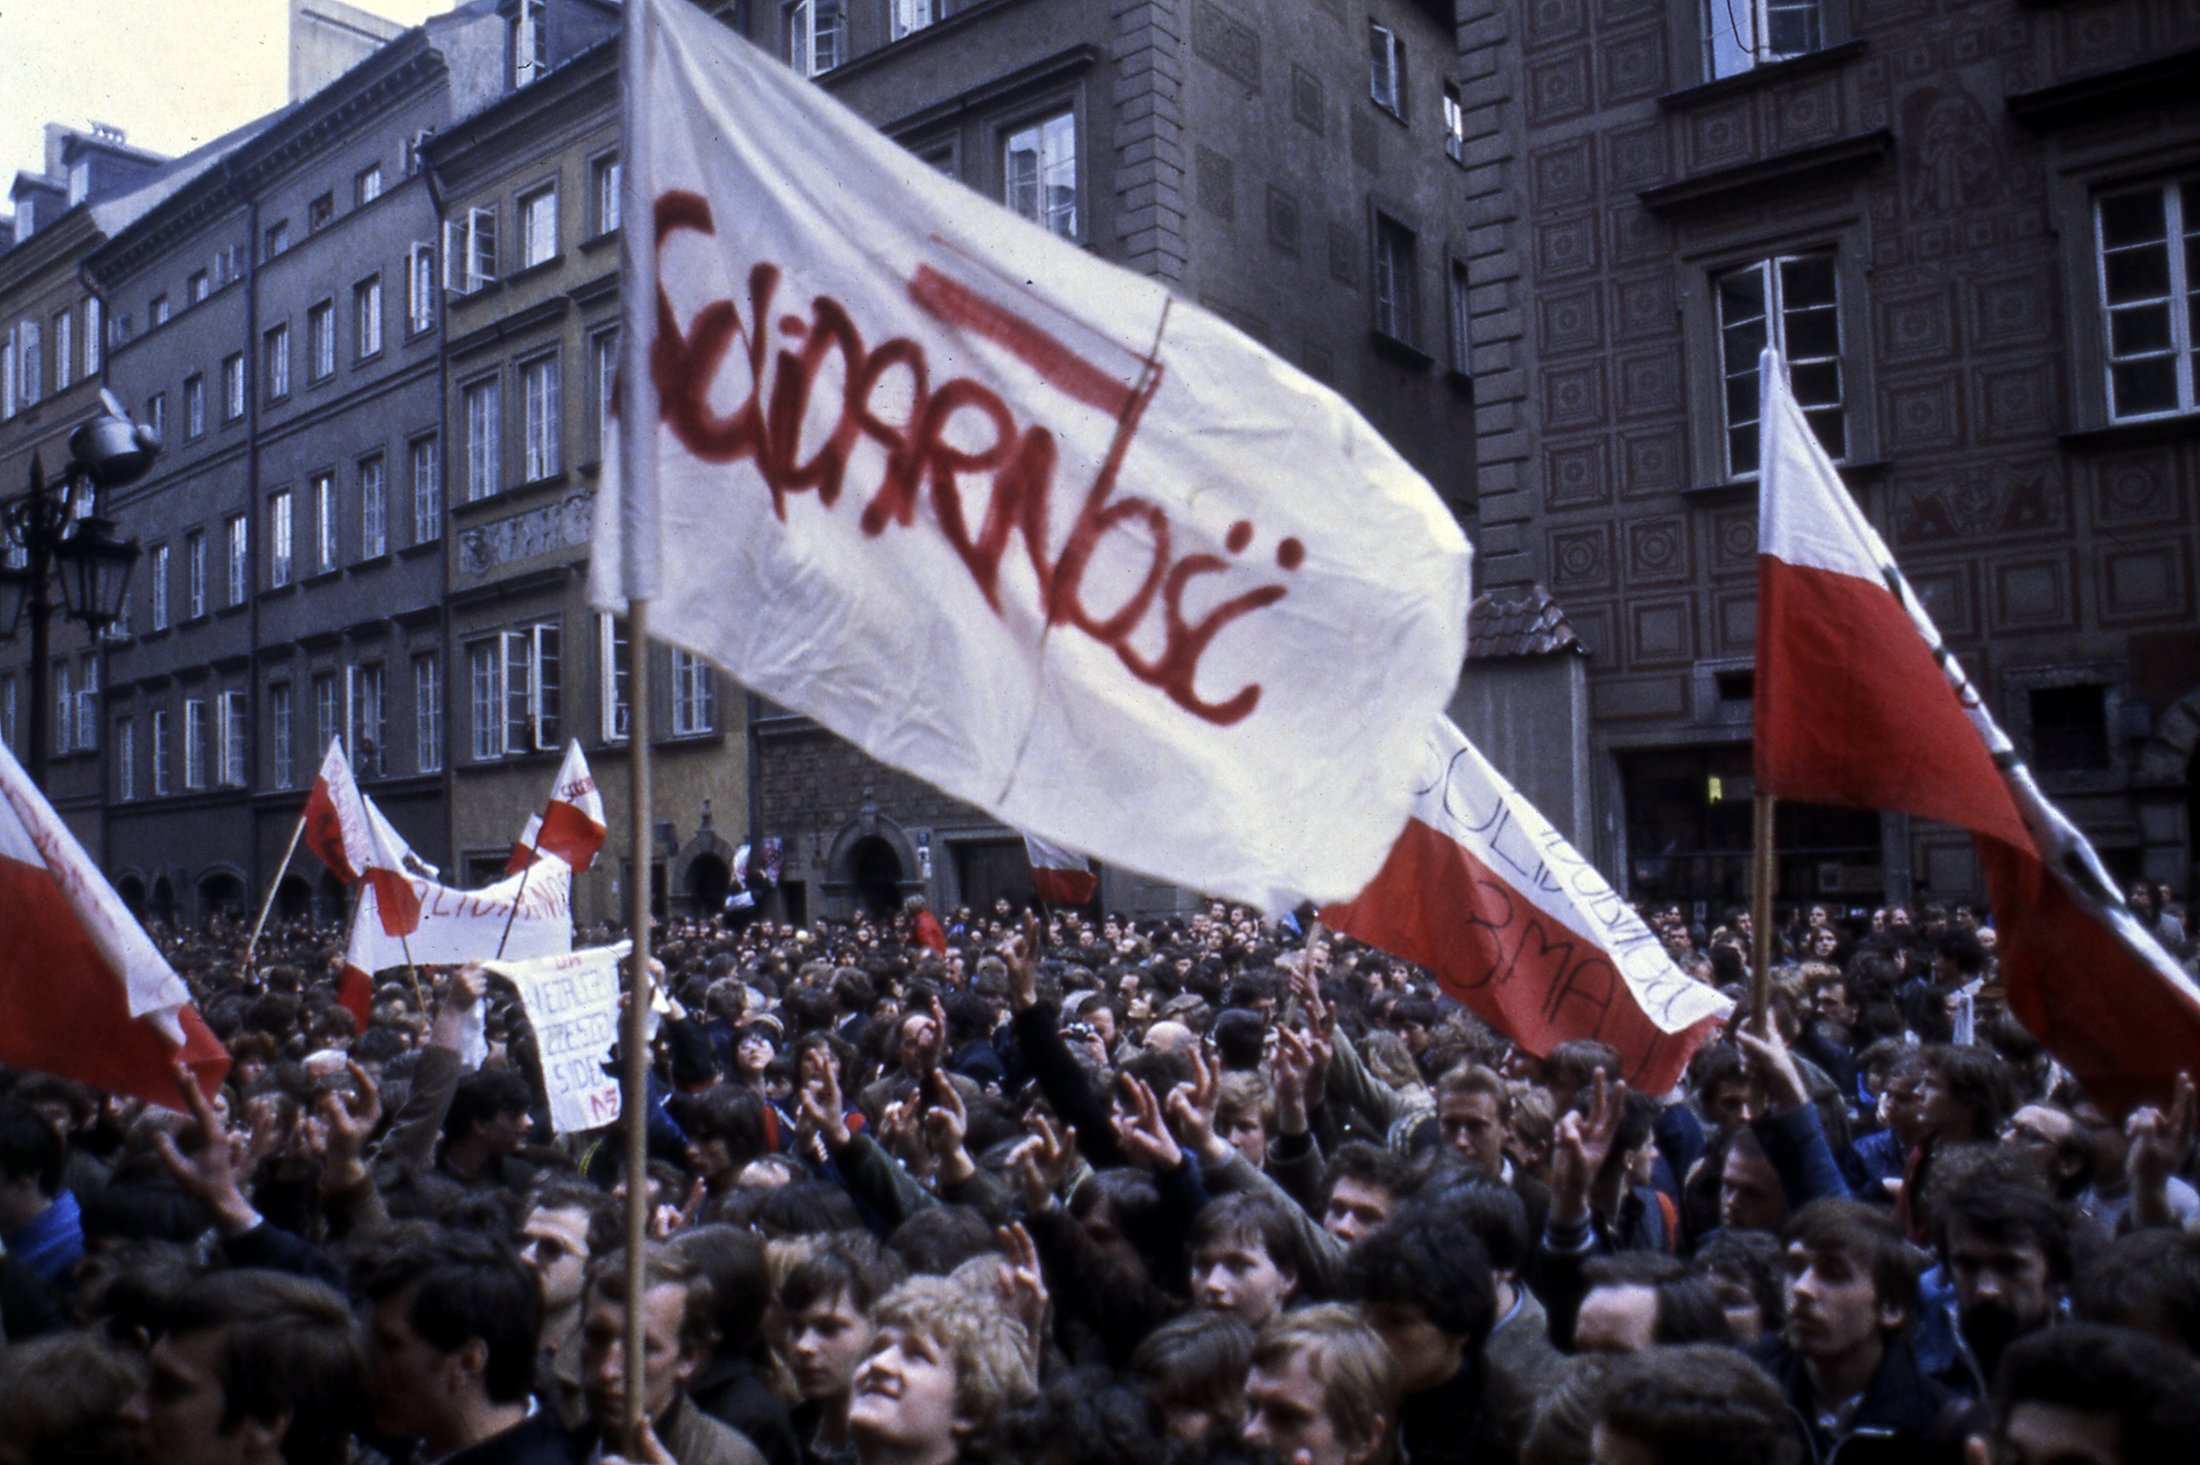 Thousands of Solidarity protestors take to the streets in the worst disturbances to affect the capital since the imposition of martial law as squads of Polish riot police are moved into the vicinity of Warsaw's Castle Square, Poland, May 3, 1982. (AP Photo)